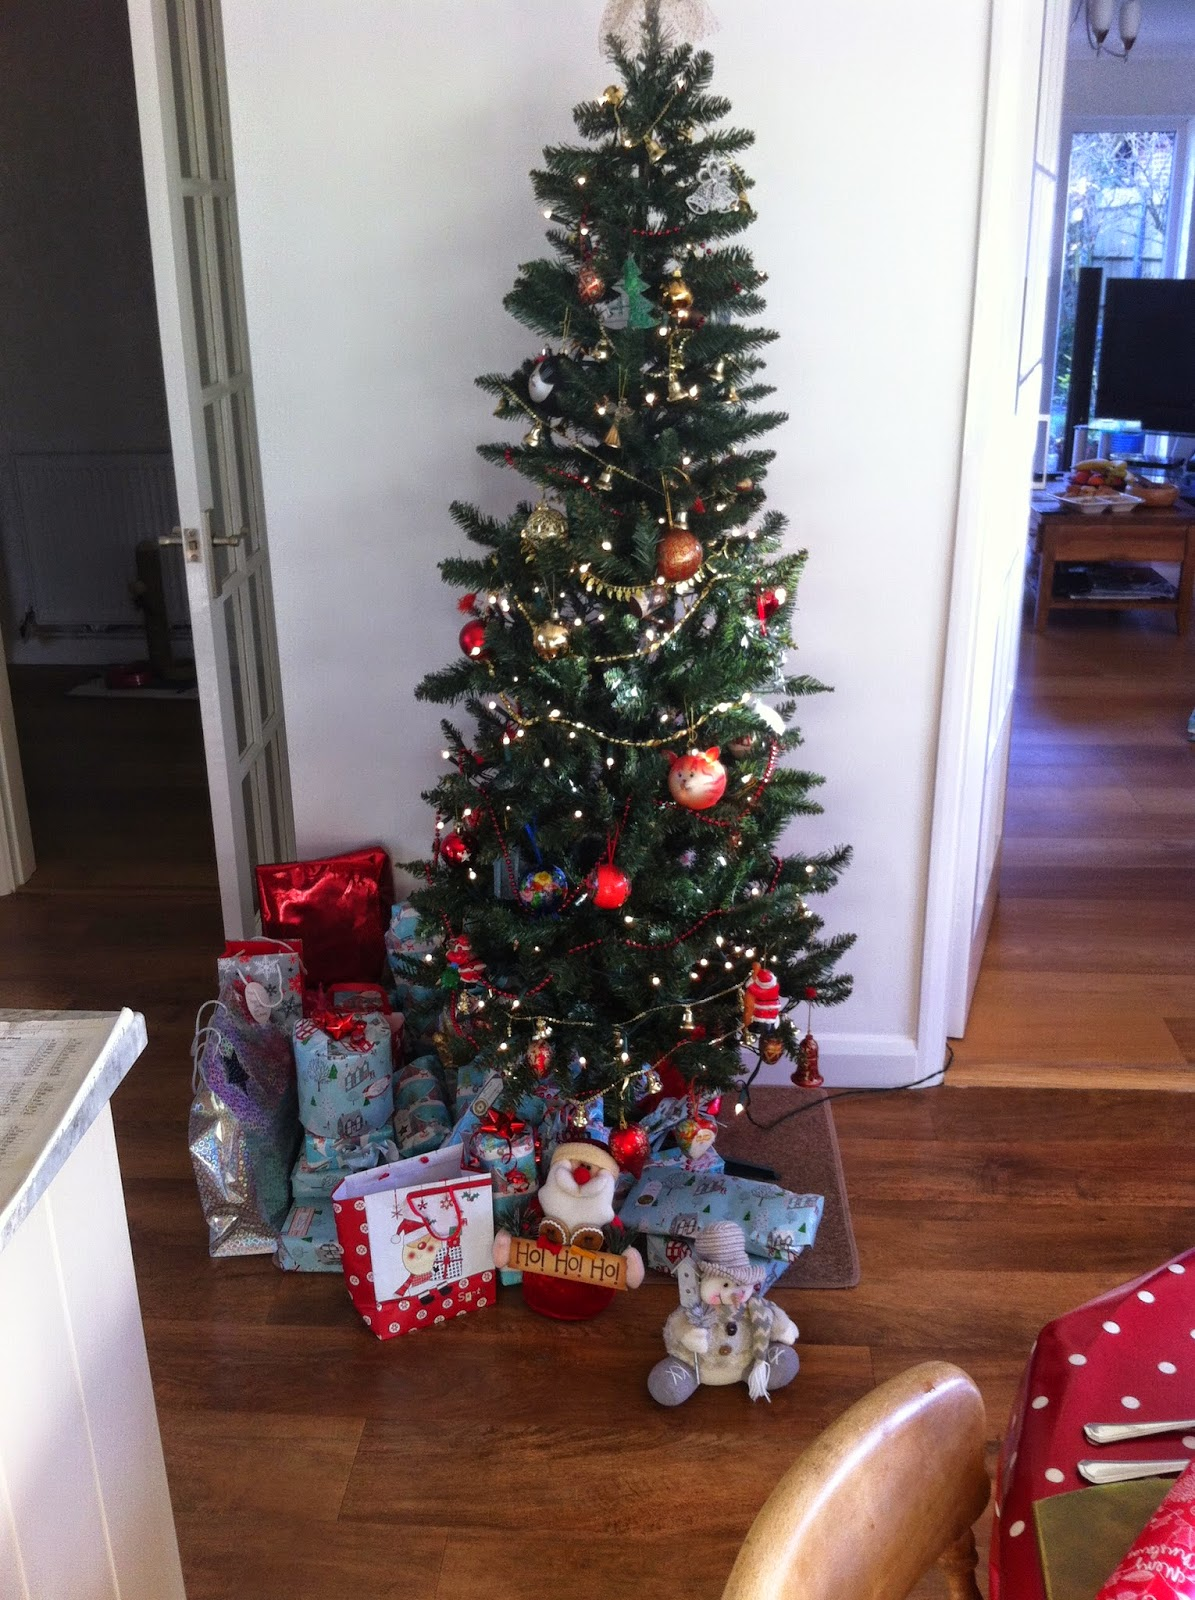 Instagram: RhiannonBlog Christmas Tree 2014